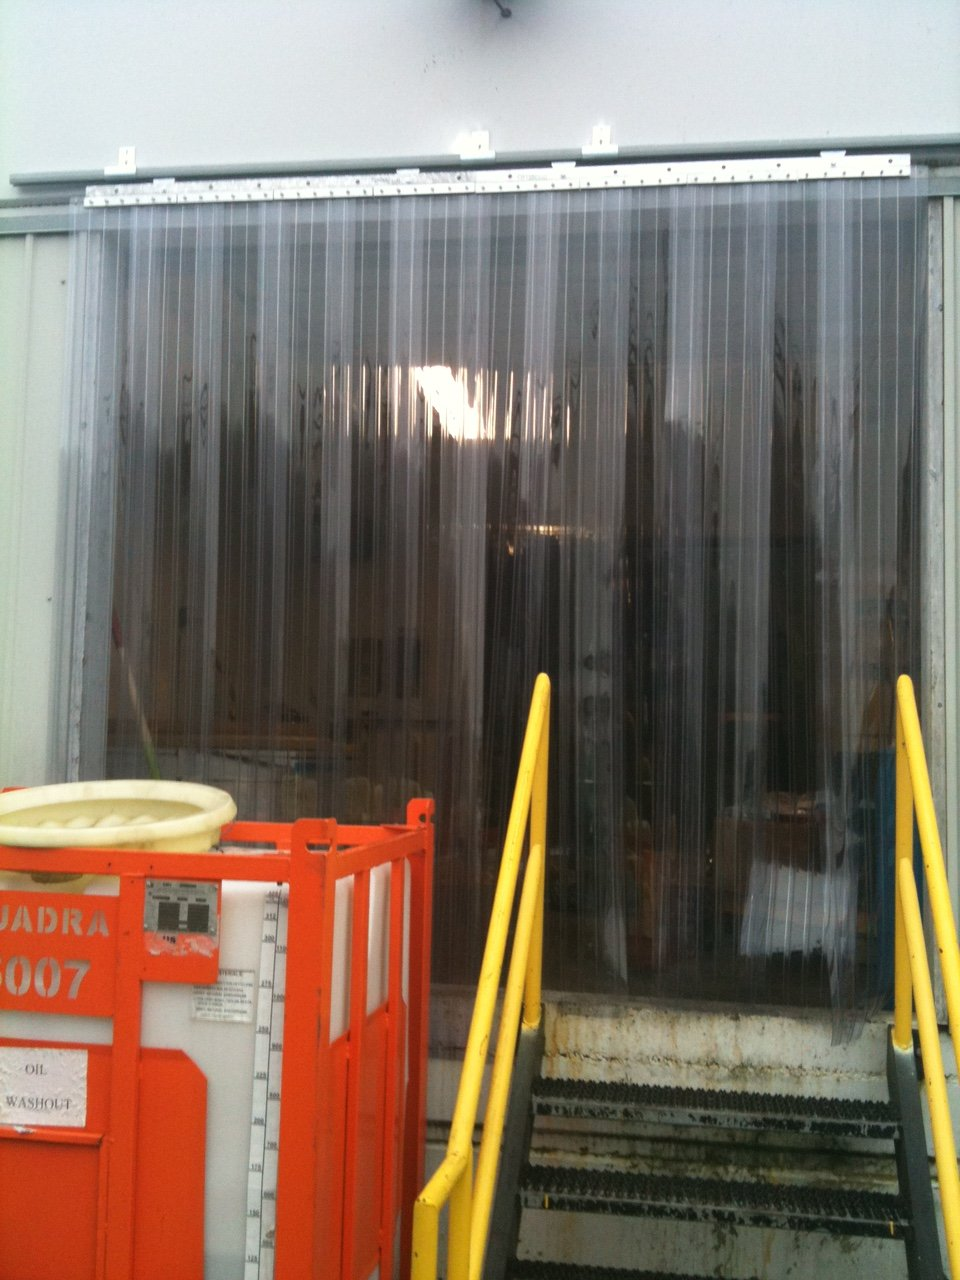 Strip-Curtains.com: Strip Door Curtain - 108 in. (9 ft) width X 120 in. (10 ft) height - RIBBED - ANTI Scratch 8 in. strips with 50% overlap - common door kit (Hardware included)